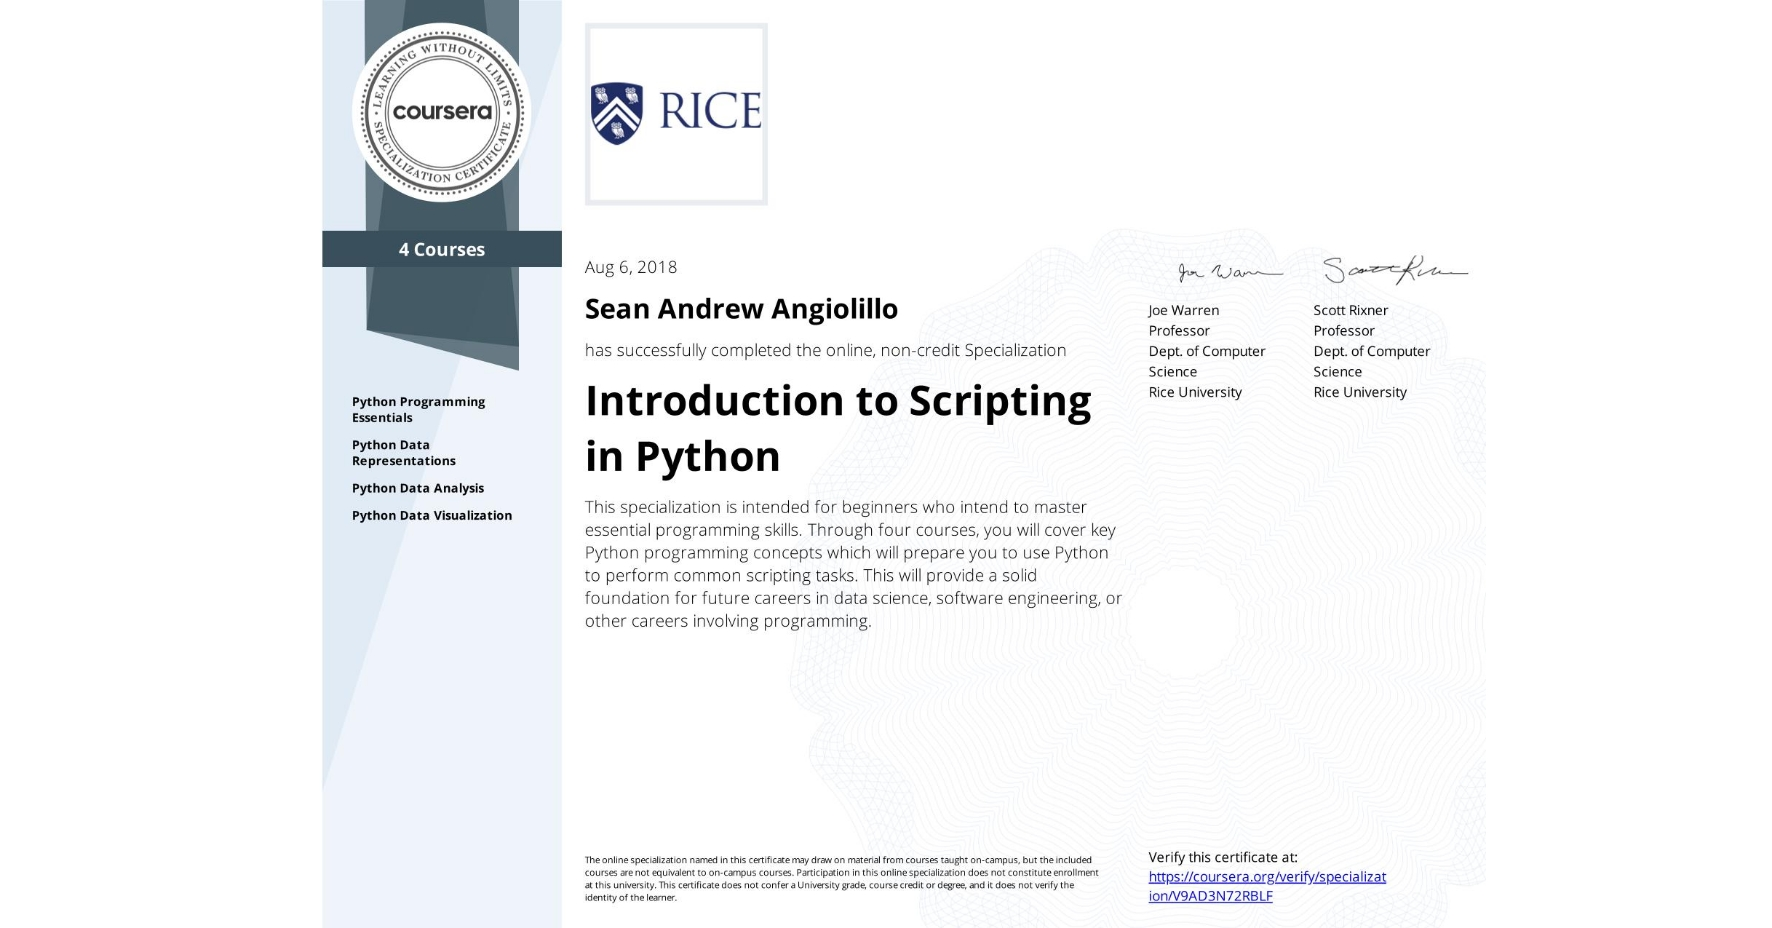 View certificate for Sean Andrew Angiolillo, Introduction to Scripting in Python, offered through Coursera. This specialization is intended for beginners who intend to master essential programming skills. Through four courses, you will cover key Python programming concepts which will prepare you to use Python to perform common scripting tasks. This will provide a solid foundation for future careers in data science, software engineering, or other careers involving programming.